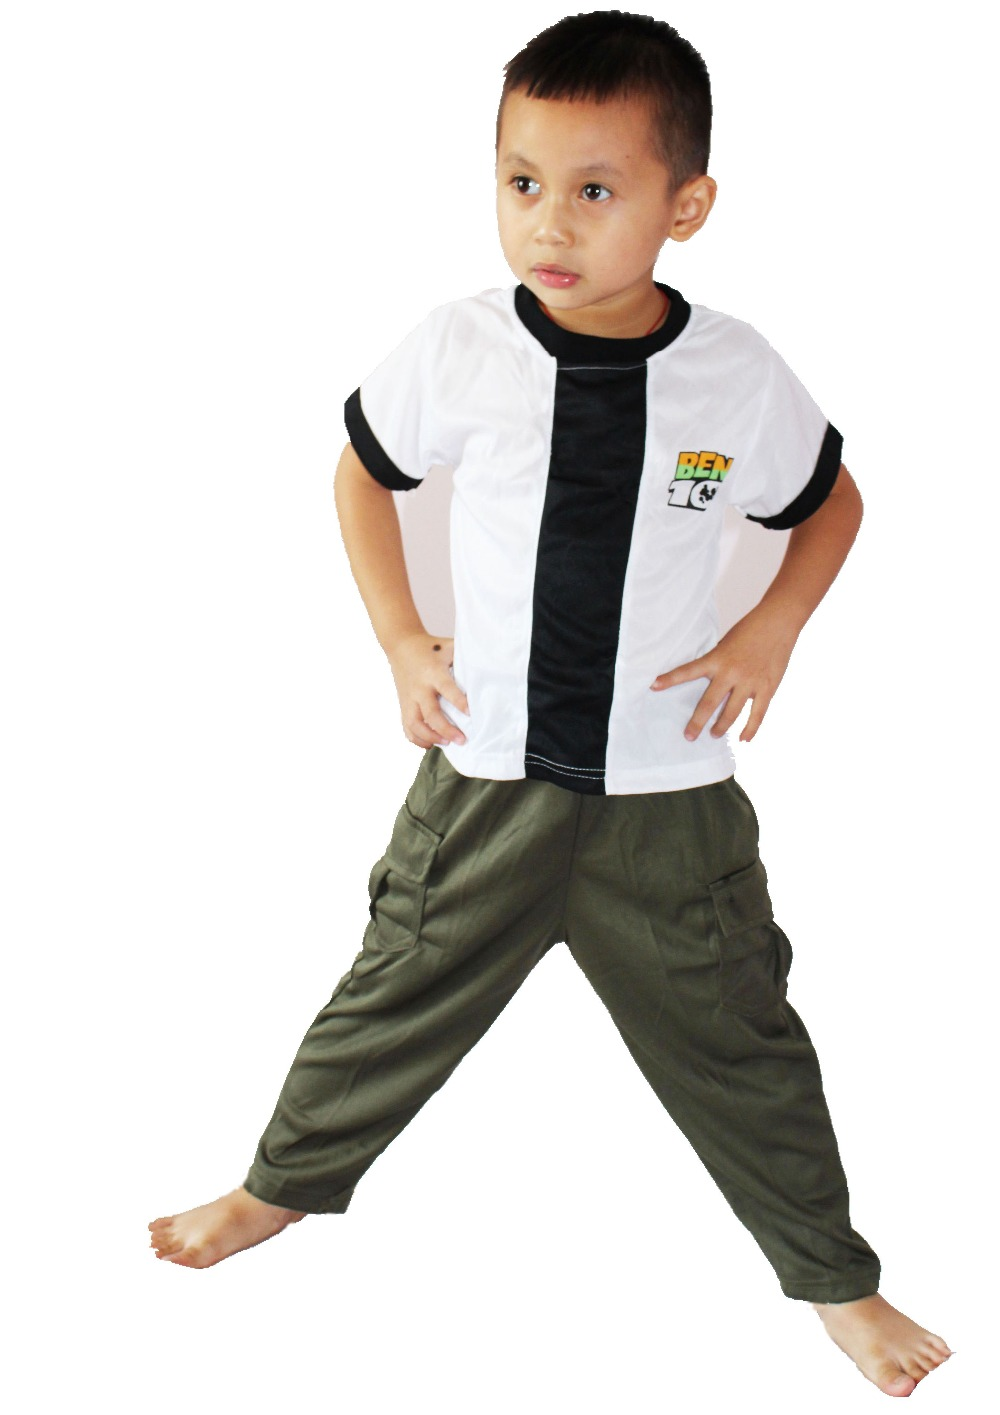 kid Cosplay Halloween Party Ben 10: Race Against Time kleding, Boy BEN-10 Rollende kleding, T-shirt met korte mouw: S-XXL